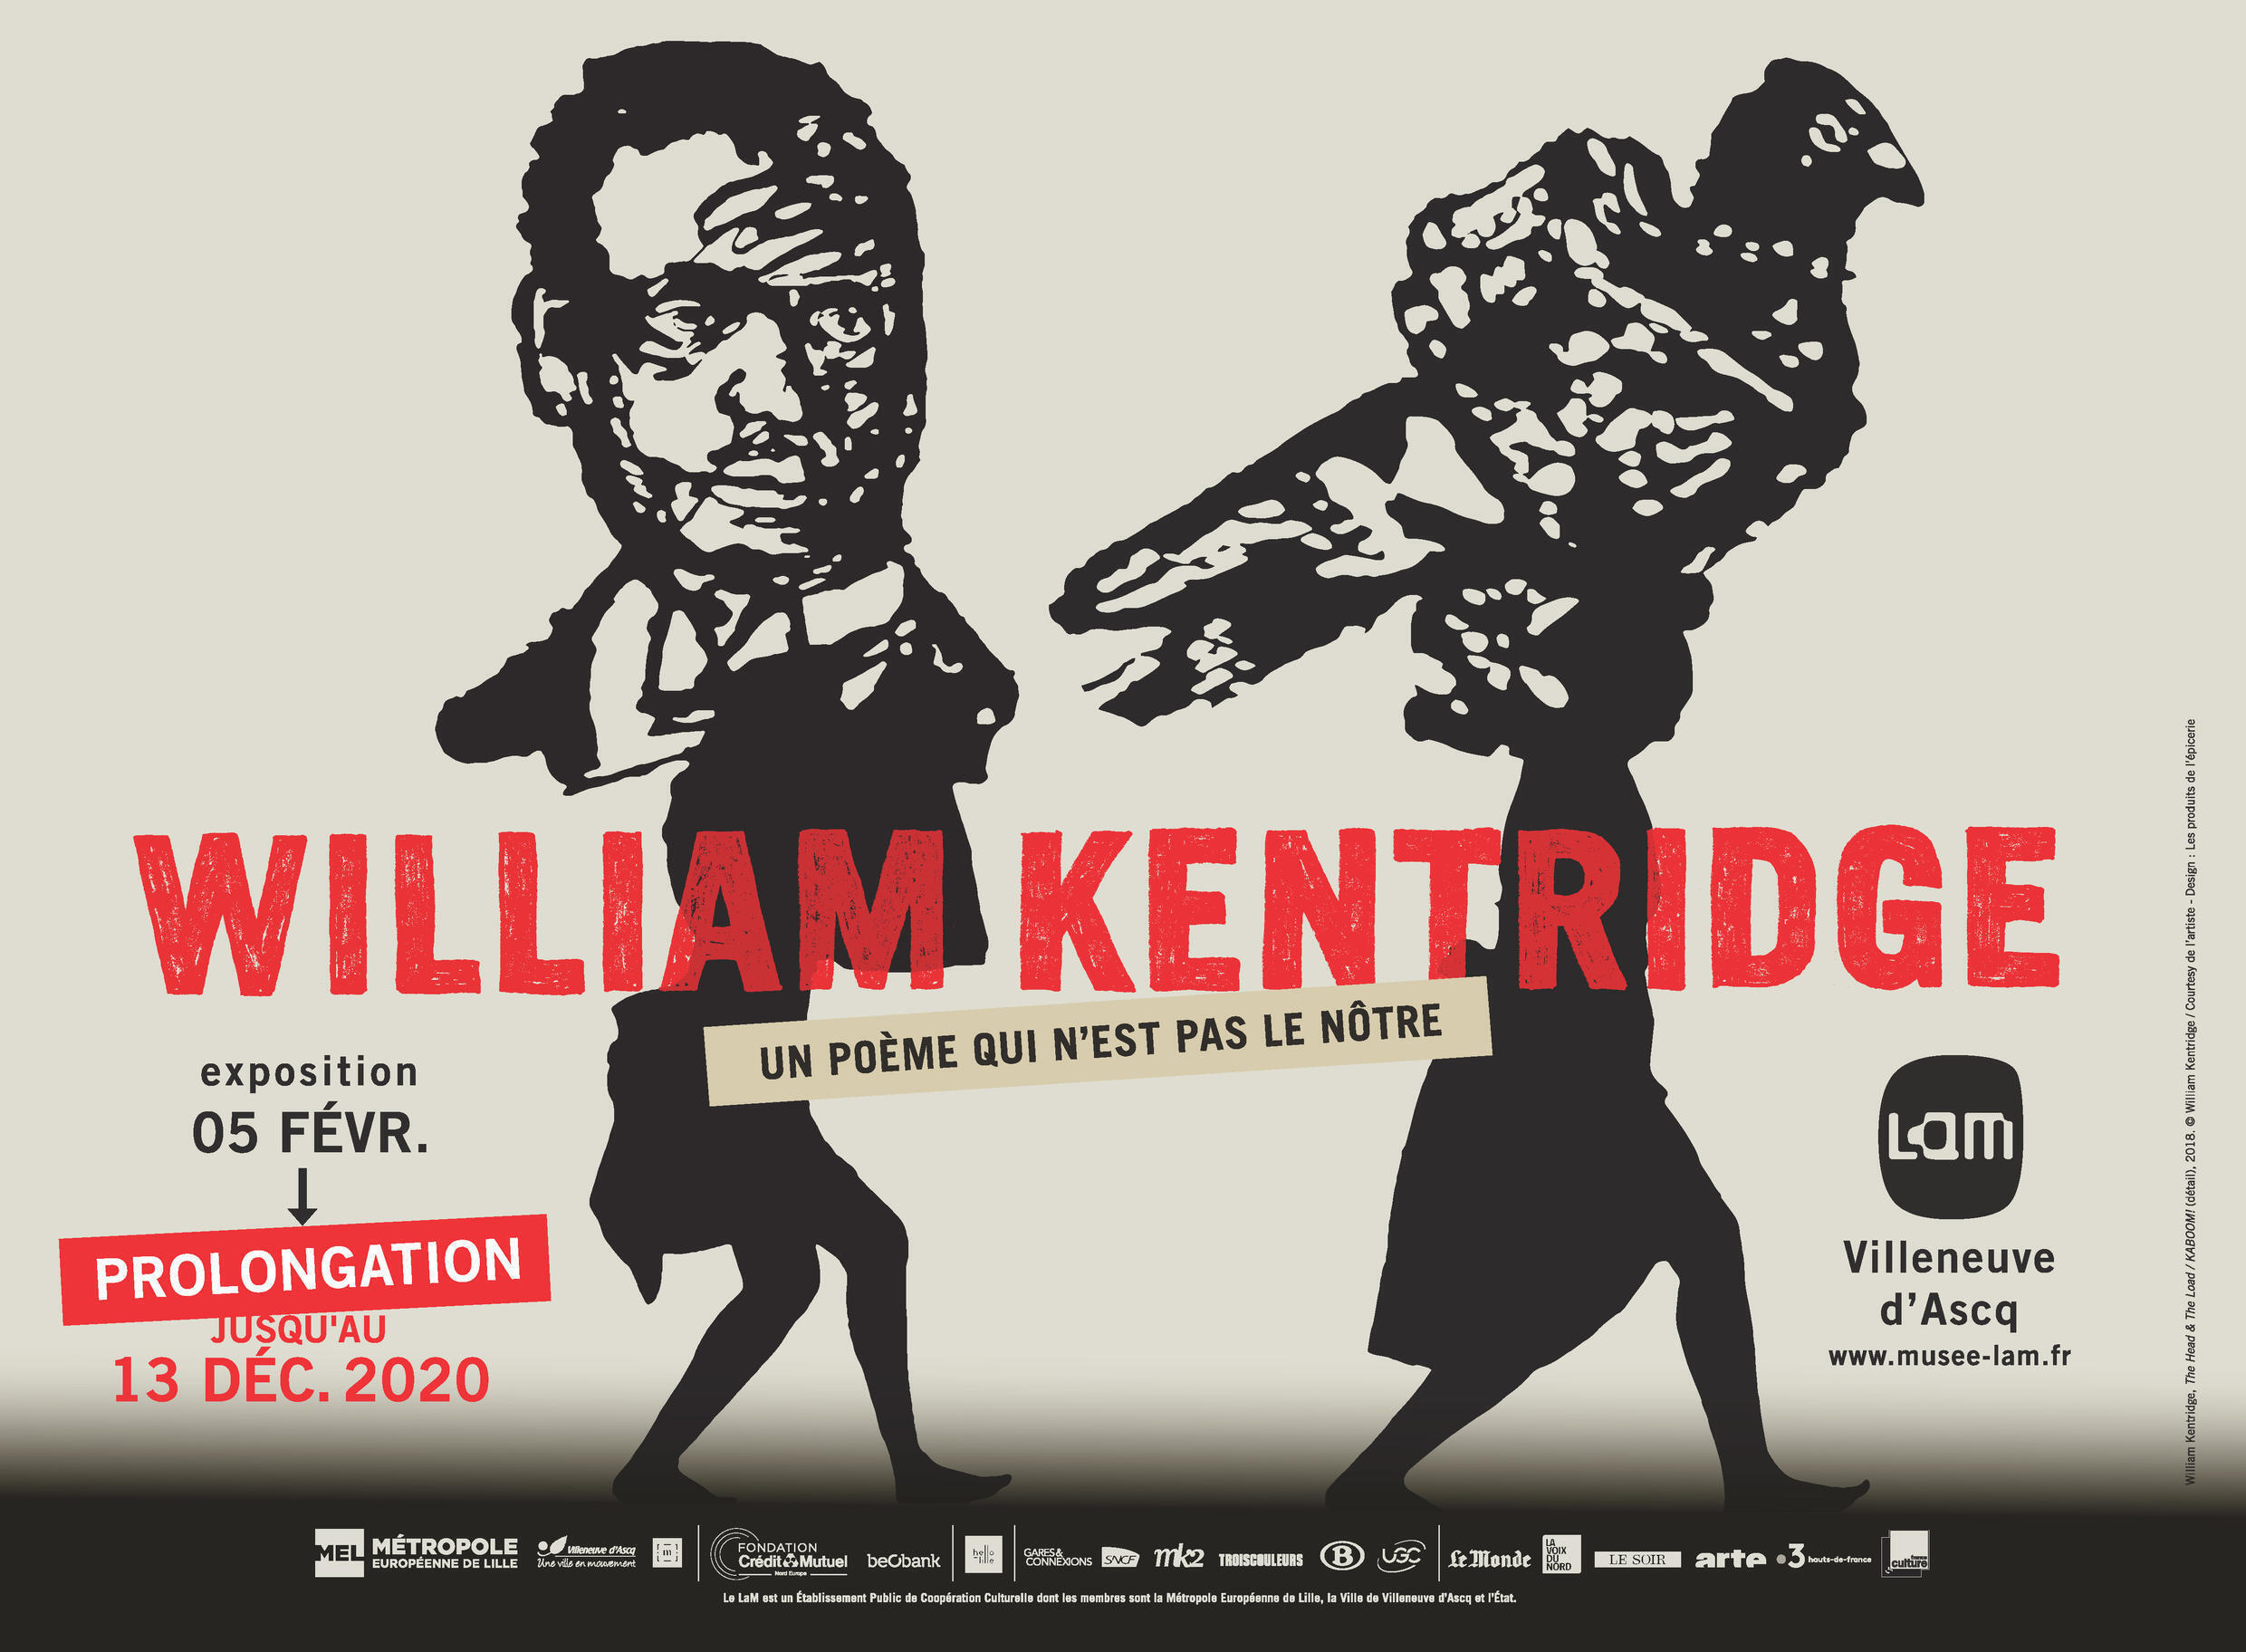 Poster for retrospective of South African artist William Kentridge at the Lille Museum of Modern, Contemporary and Outsider Art (LaM), June 2020.